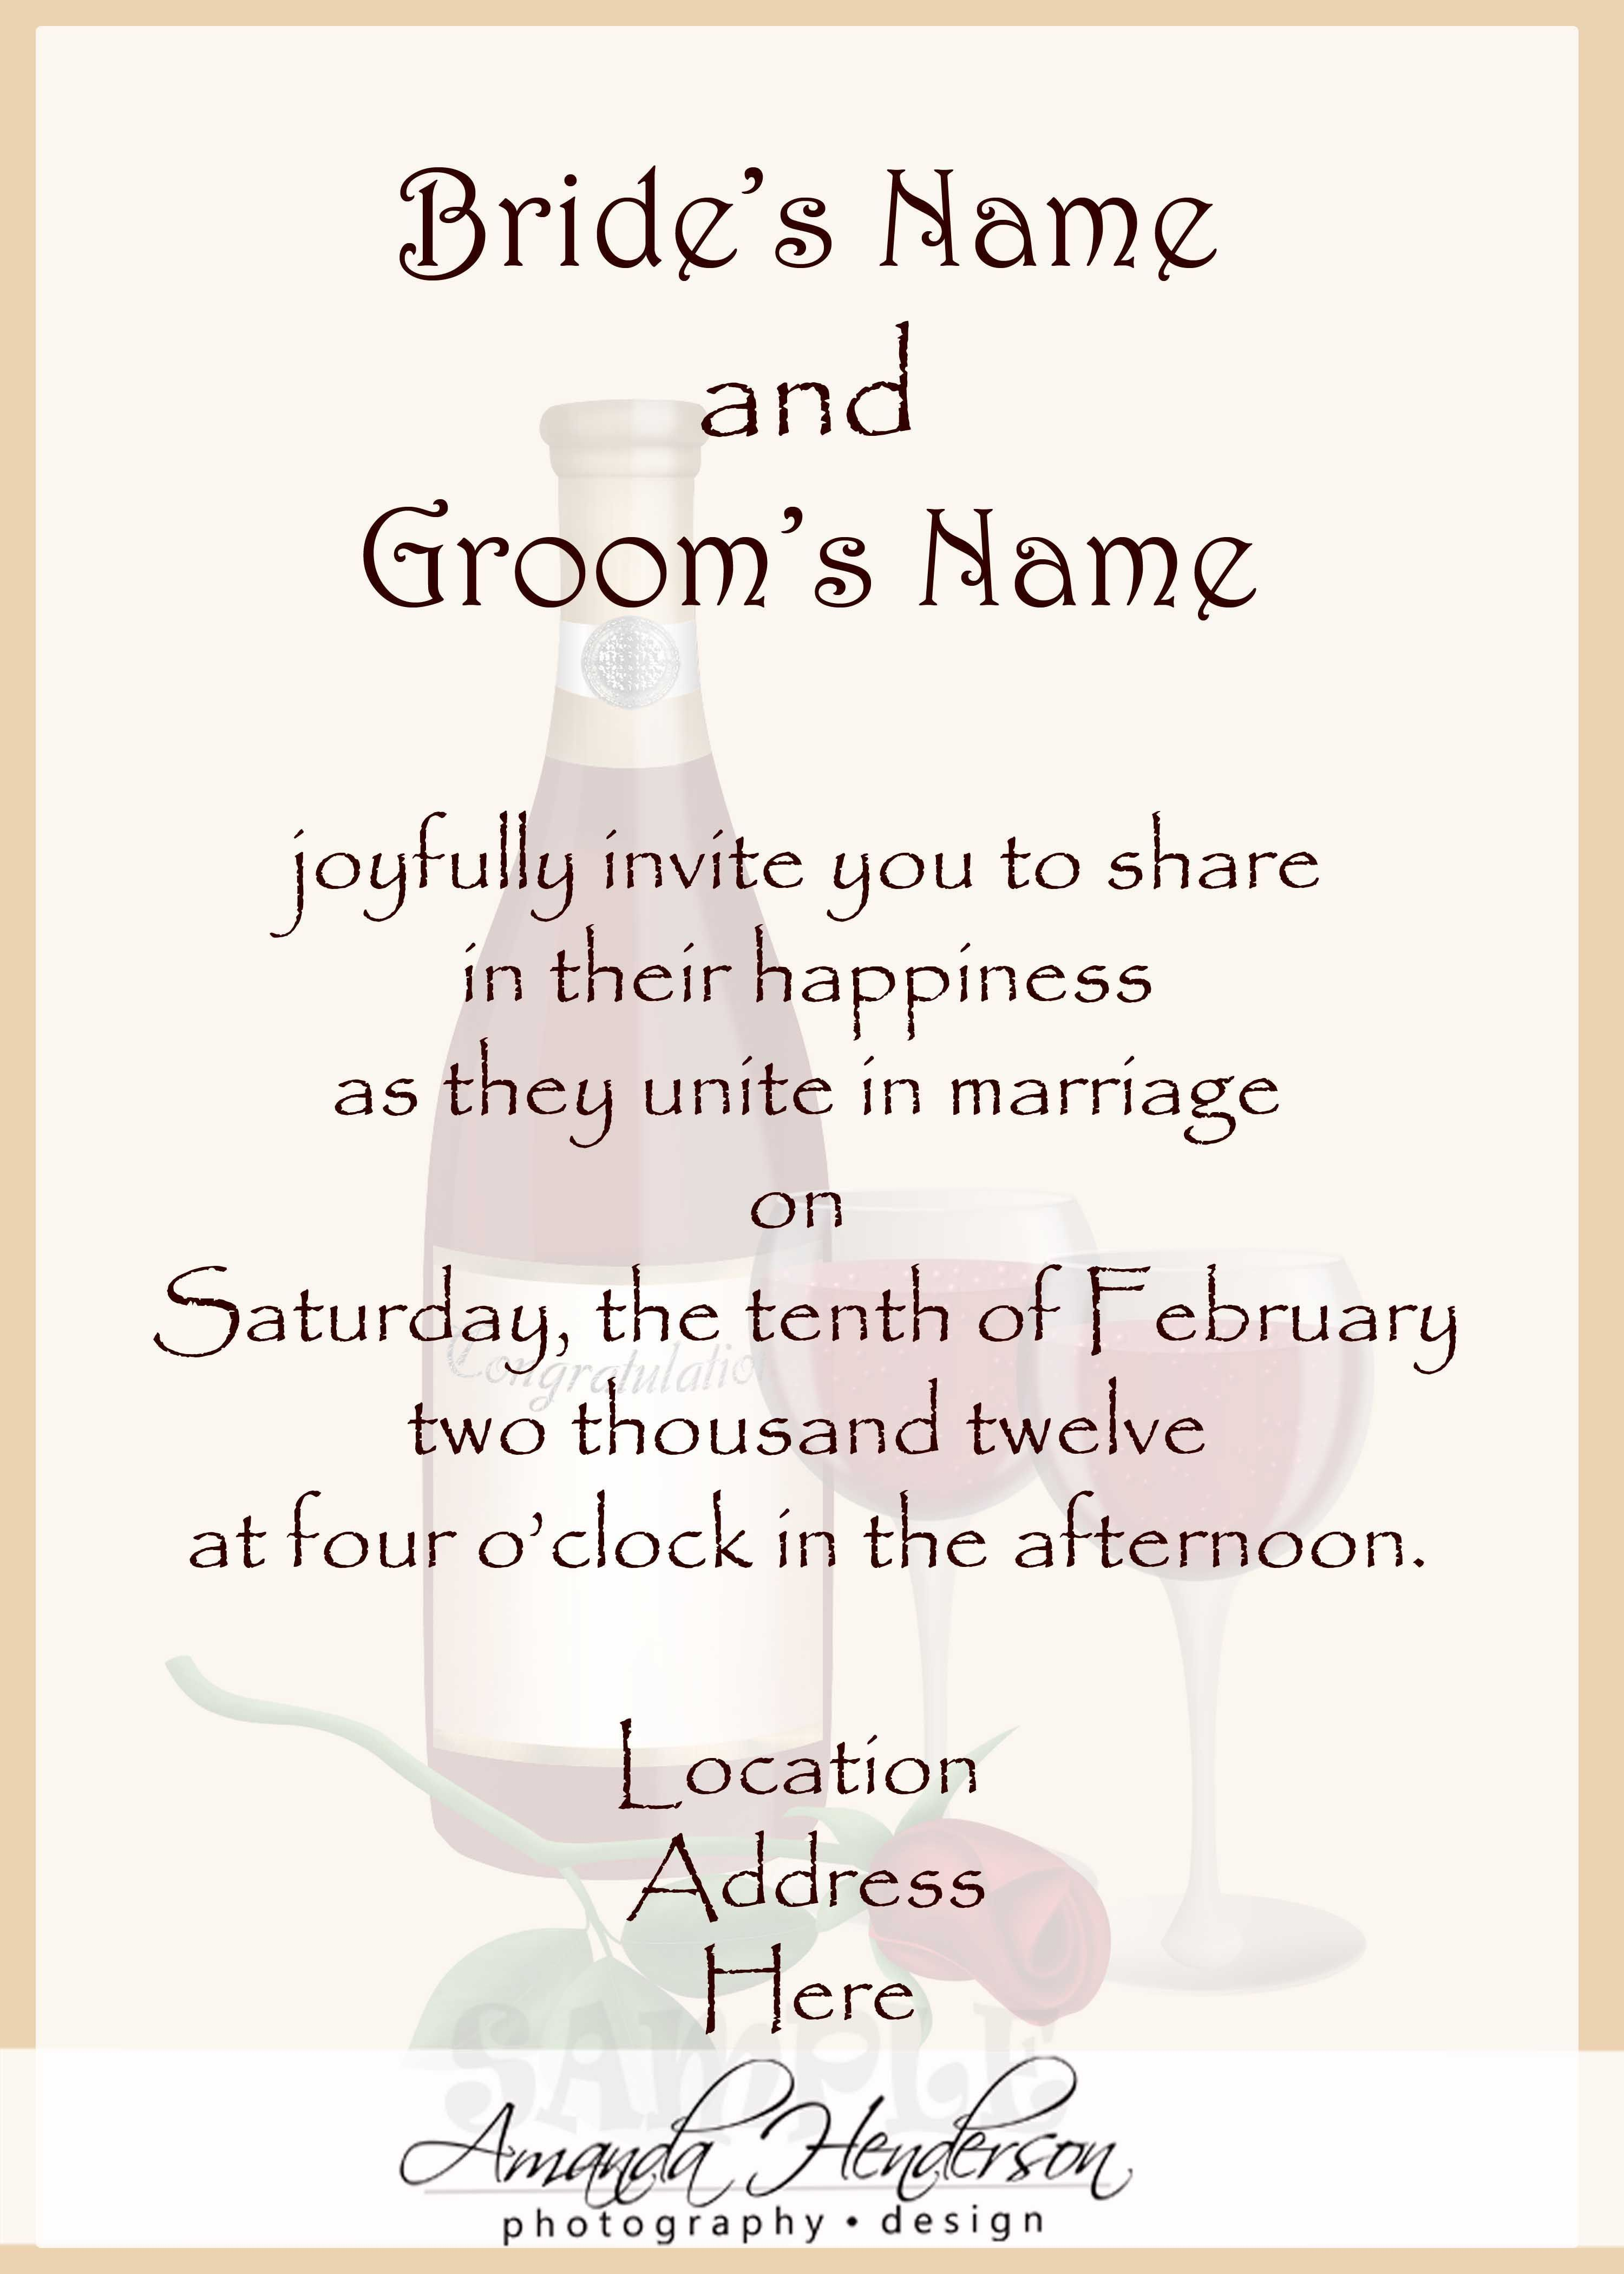 Marriage Invitation Quotes For Whatsapp Check More At Http Www Lolsurprisedollinvitations